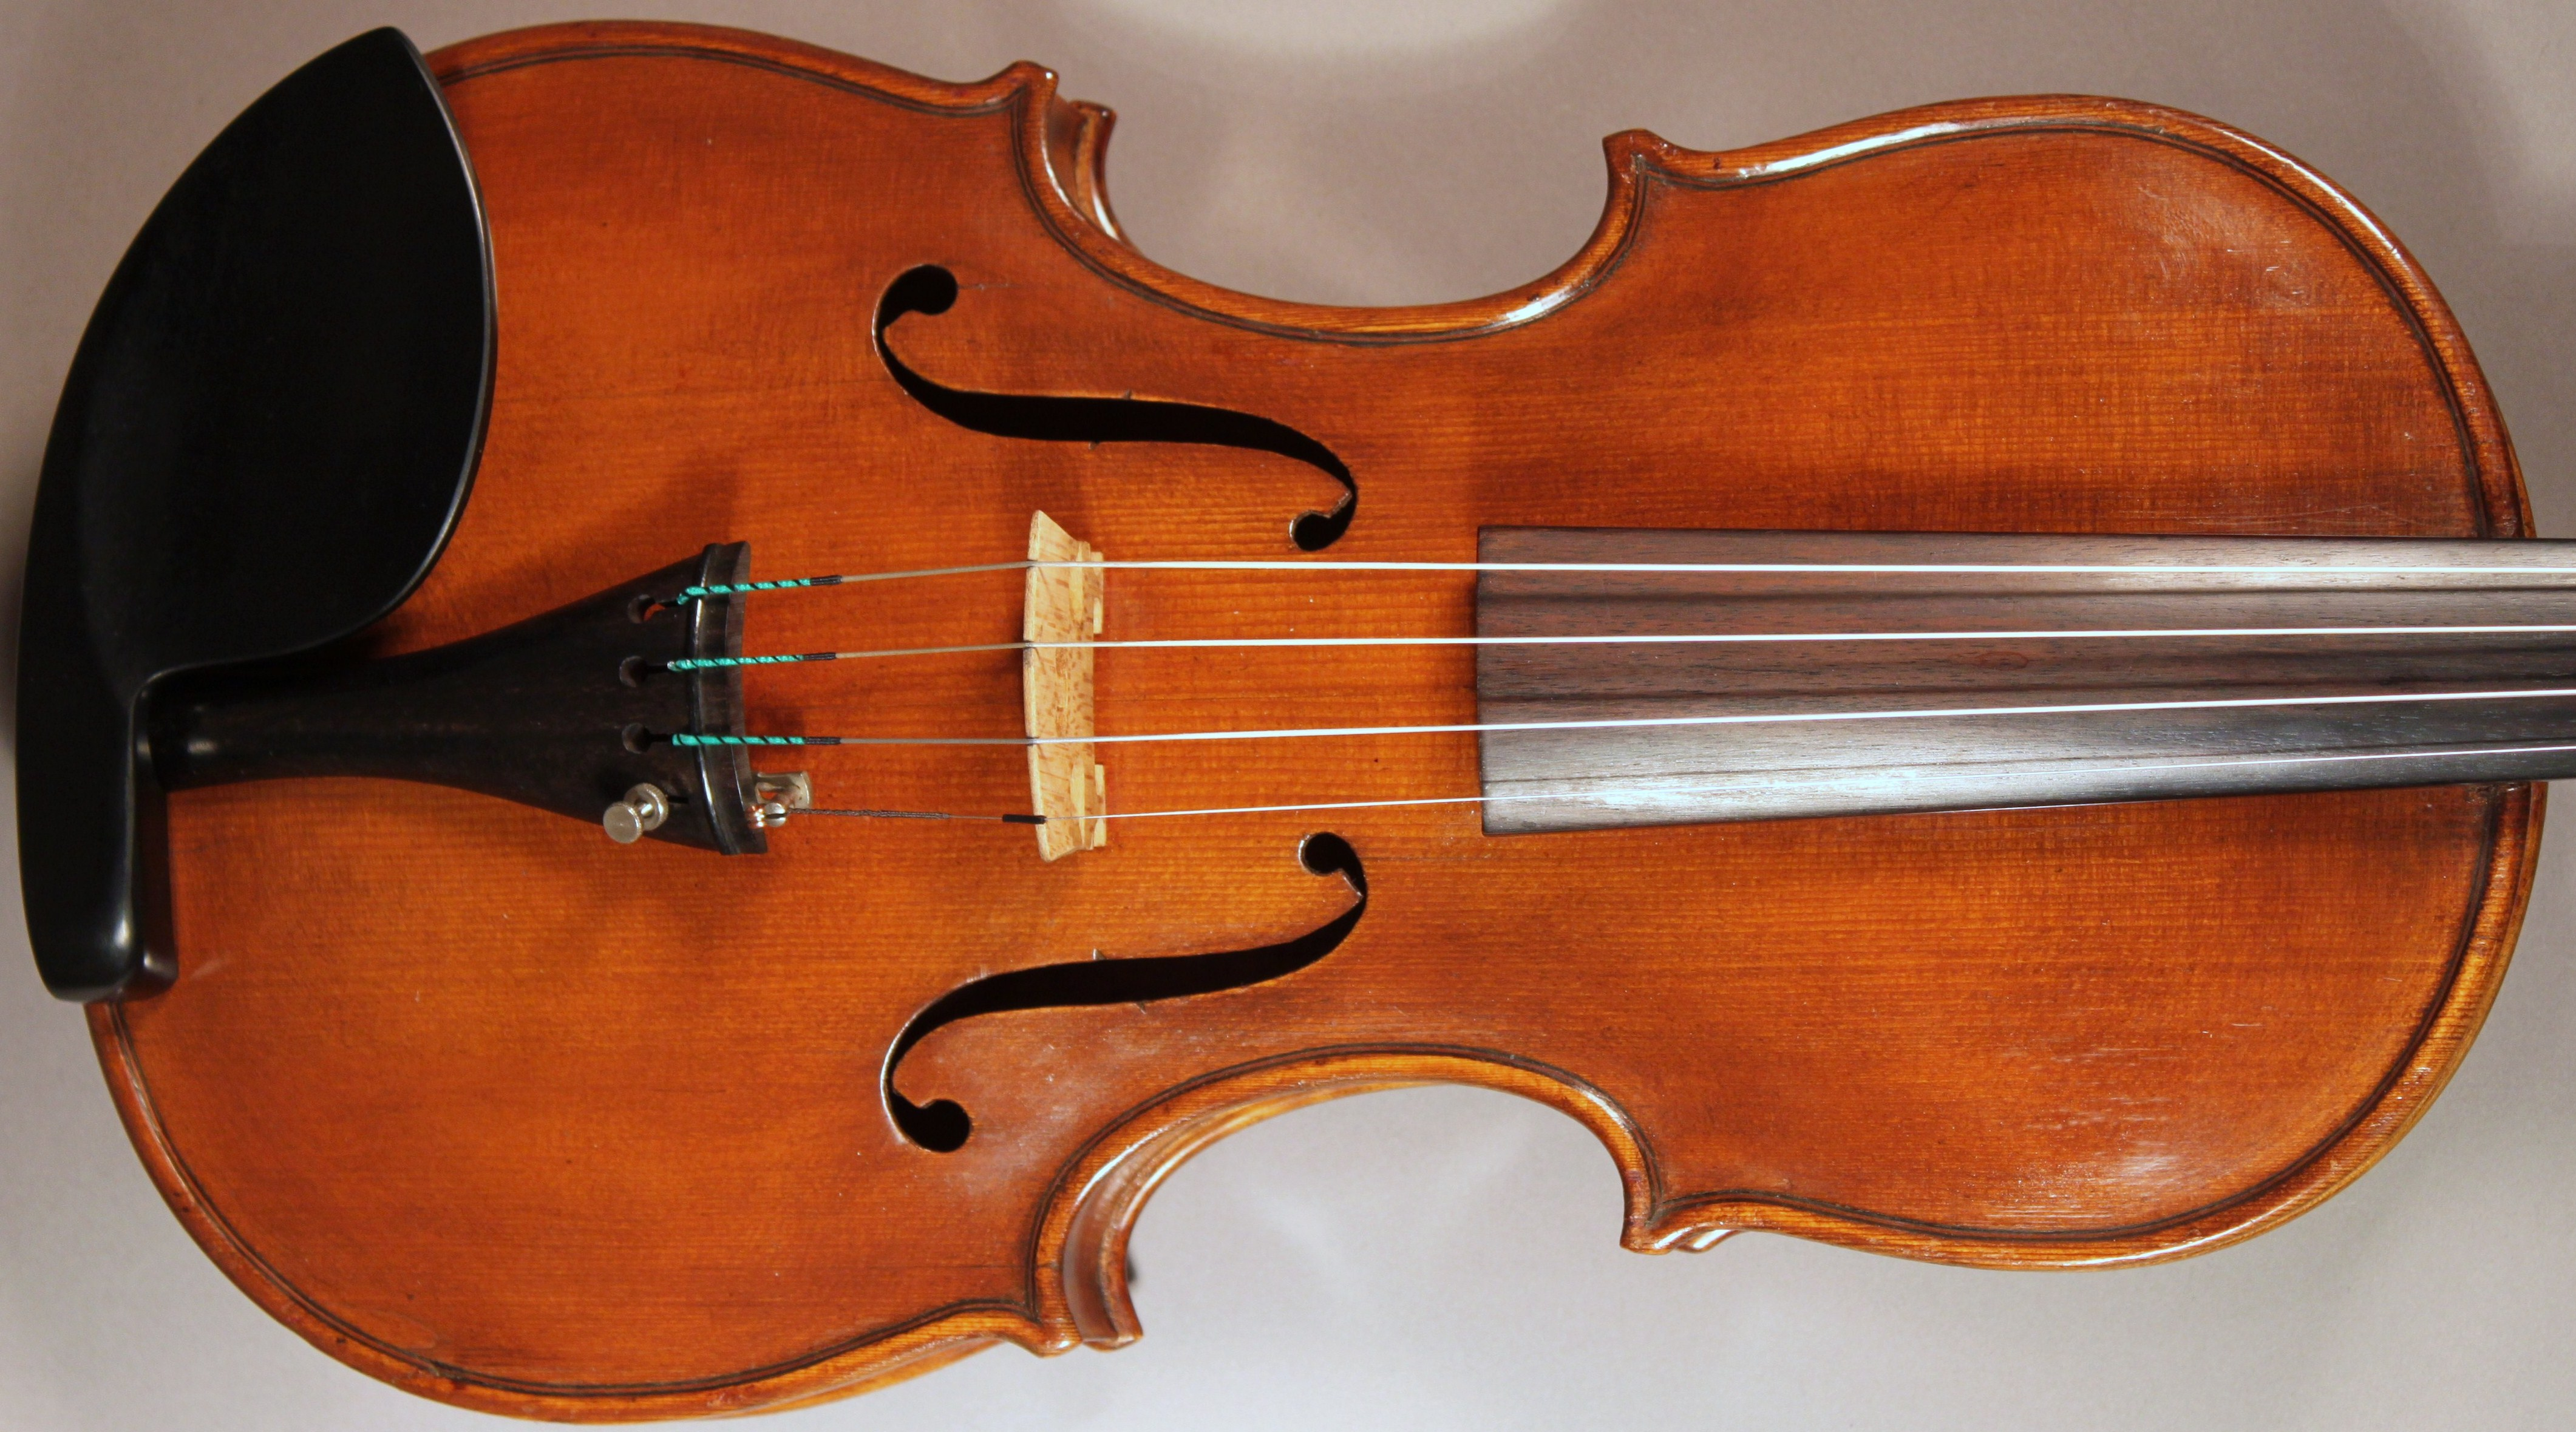 Italian violin by Egidia Bizzi, original antique Italian violin, oustanding quality Italian violin